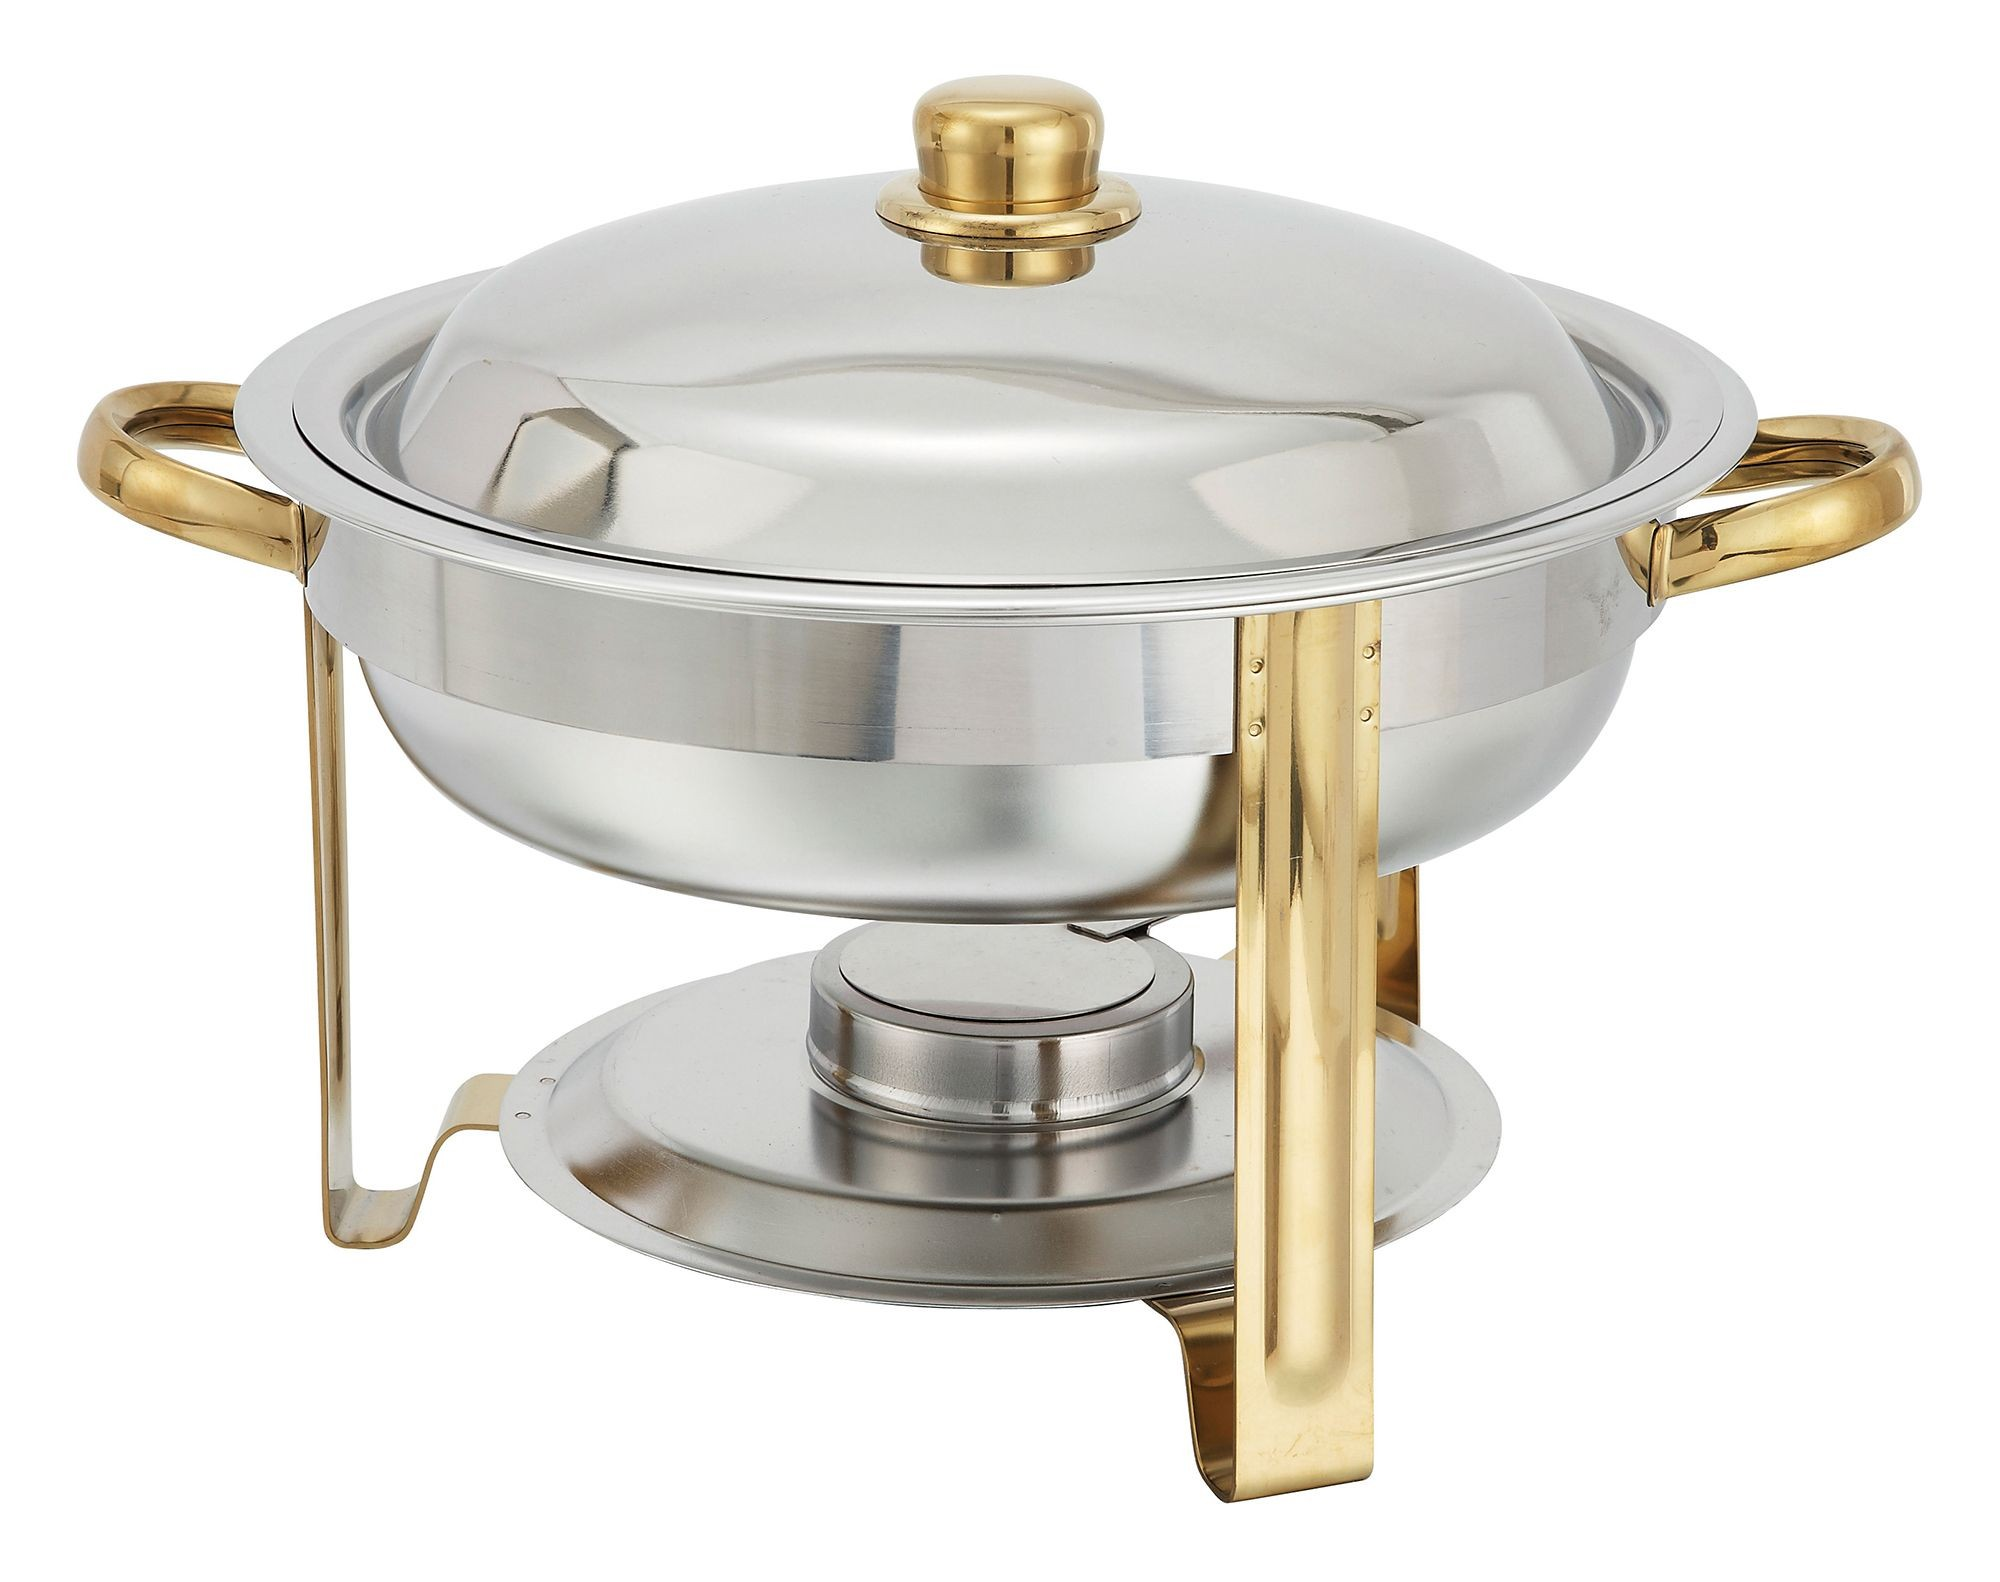 Winco 203 Malibu Stainless Steel Round Chafer 4 Qt. with Gold Accents